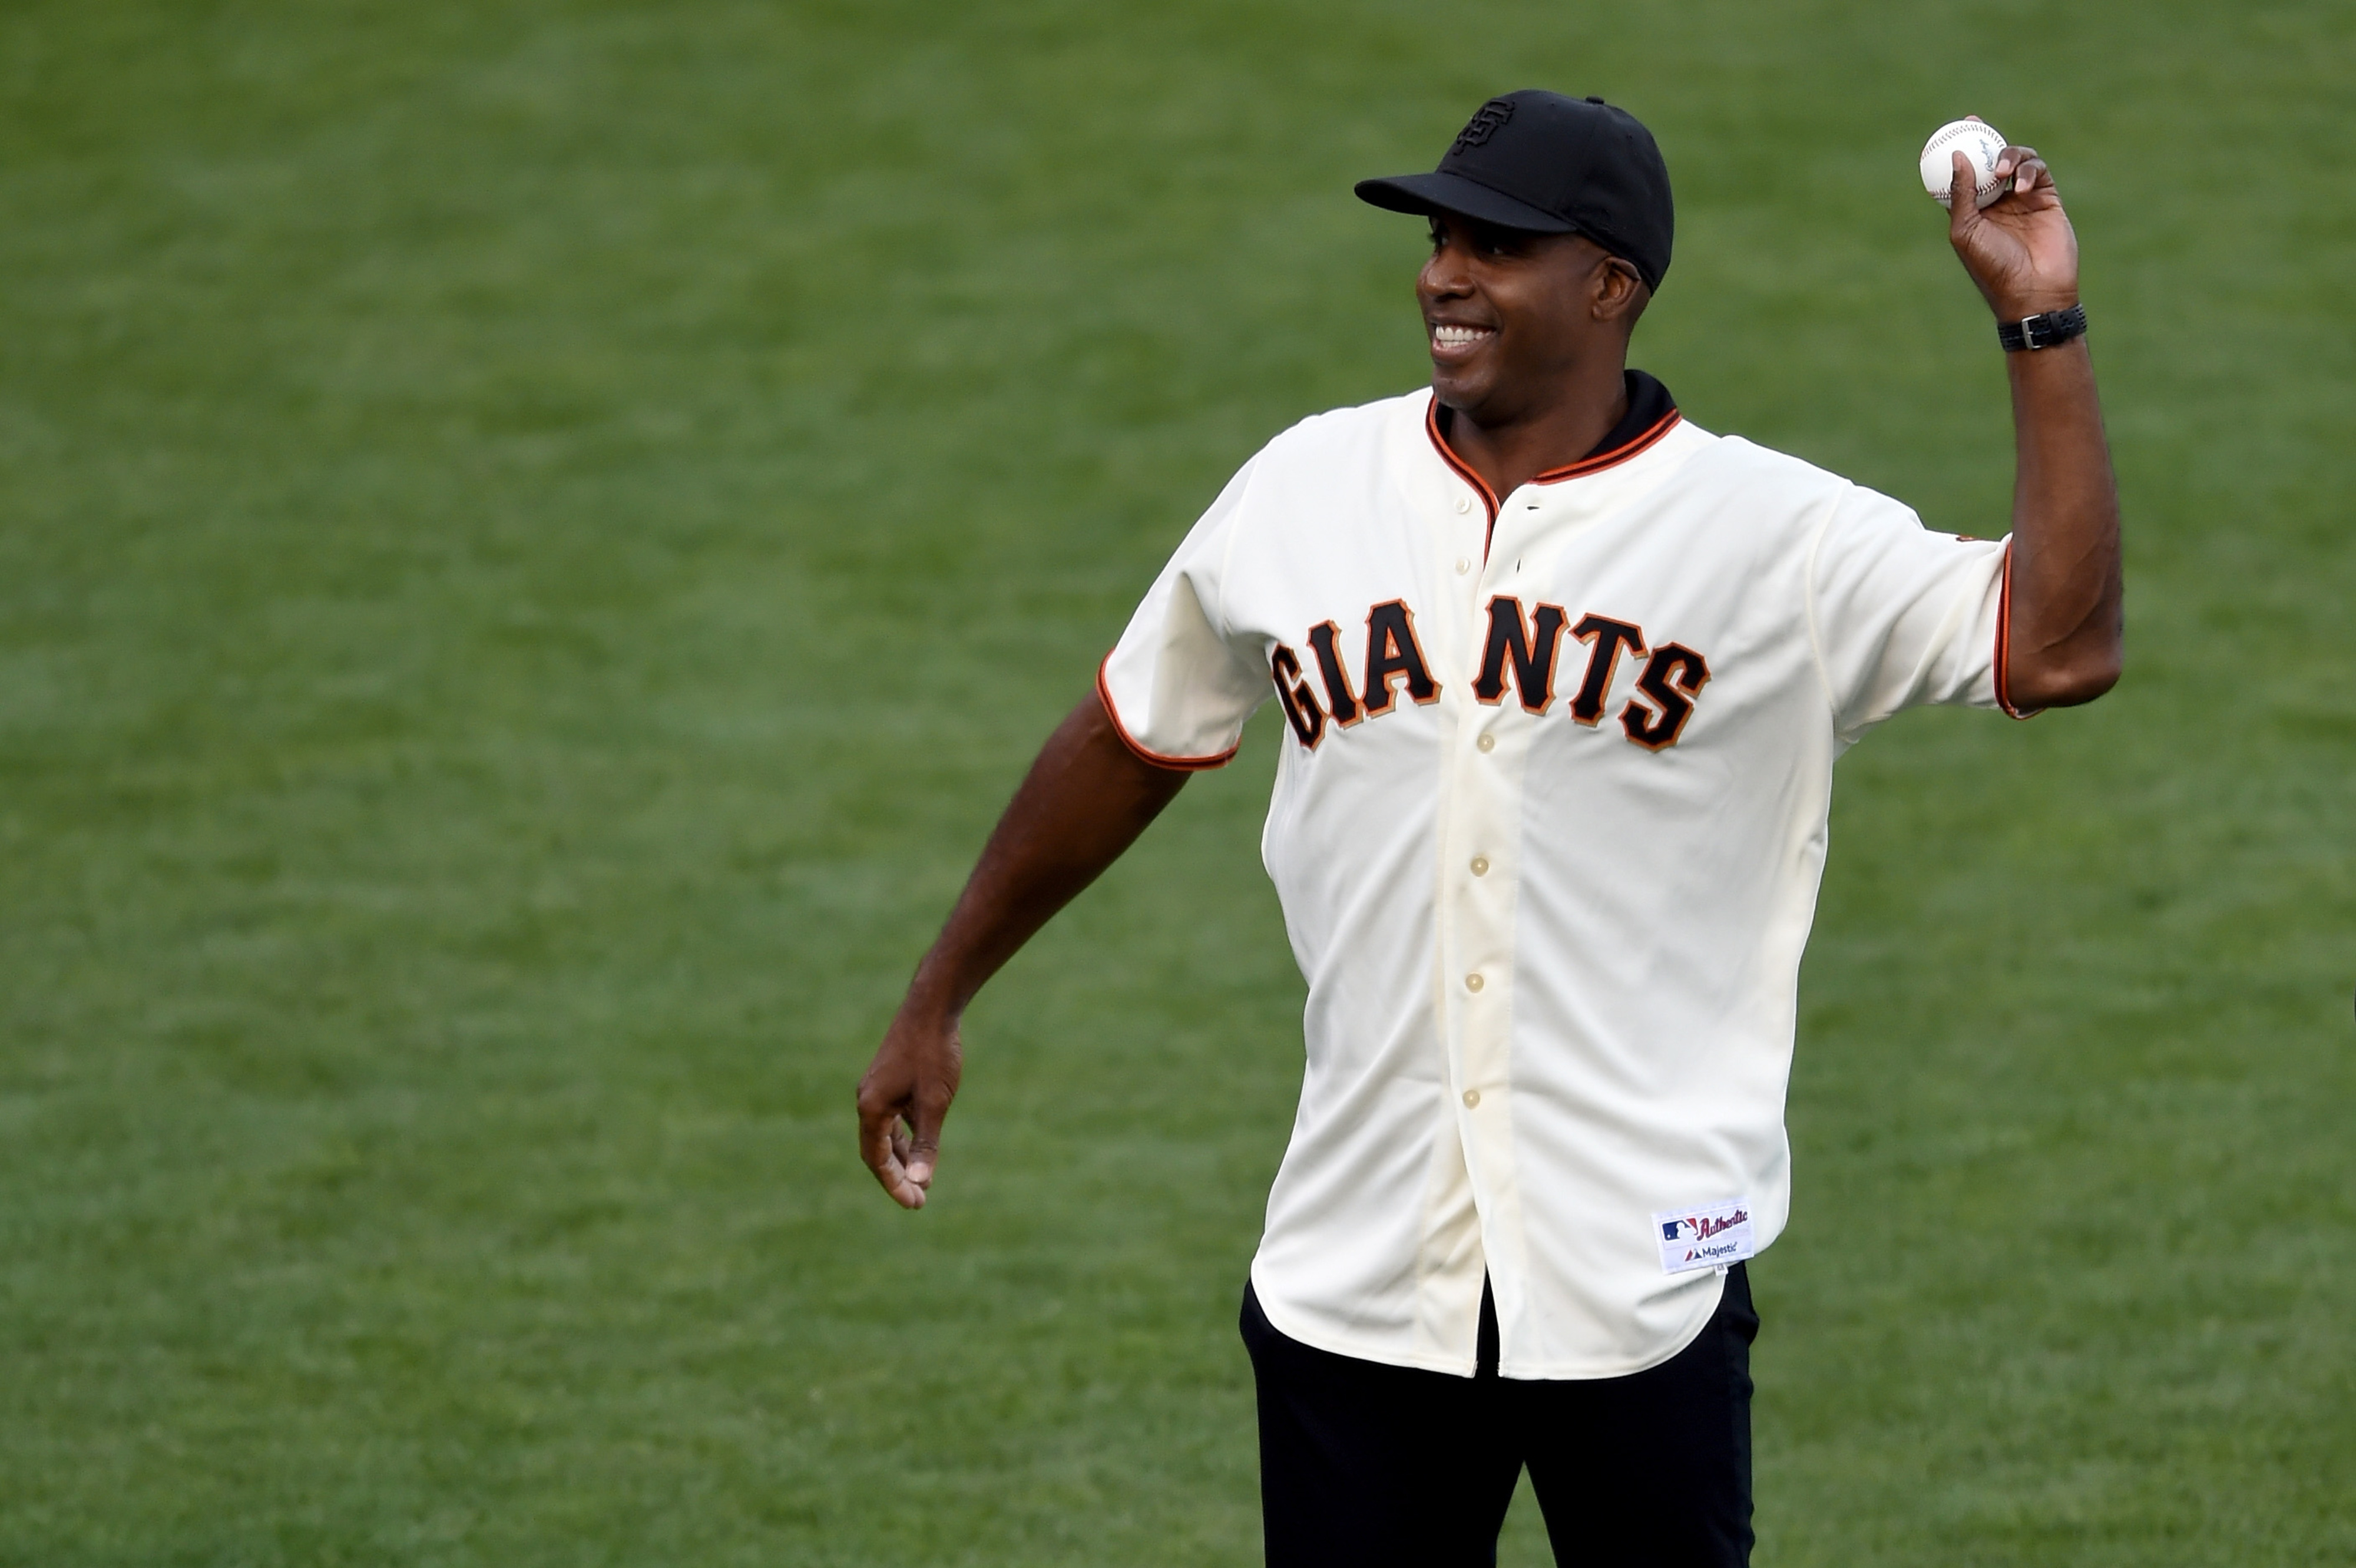 Barry Bonds throws out first pitch prior to NLCS Game 4